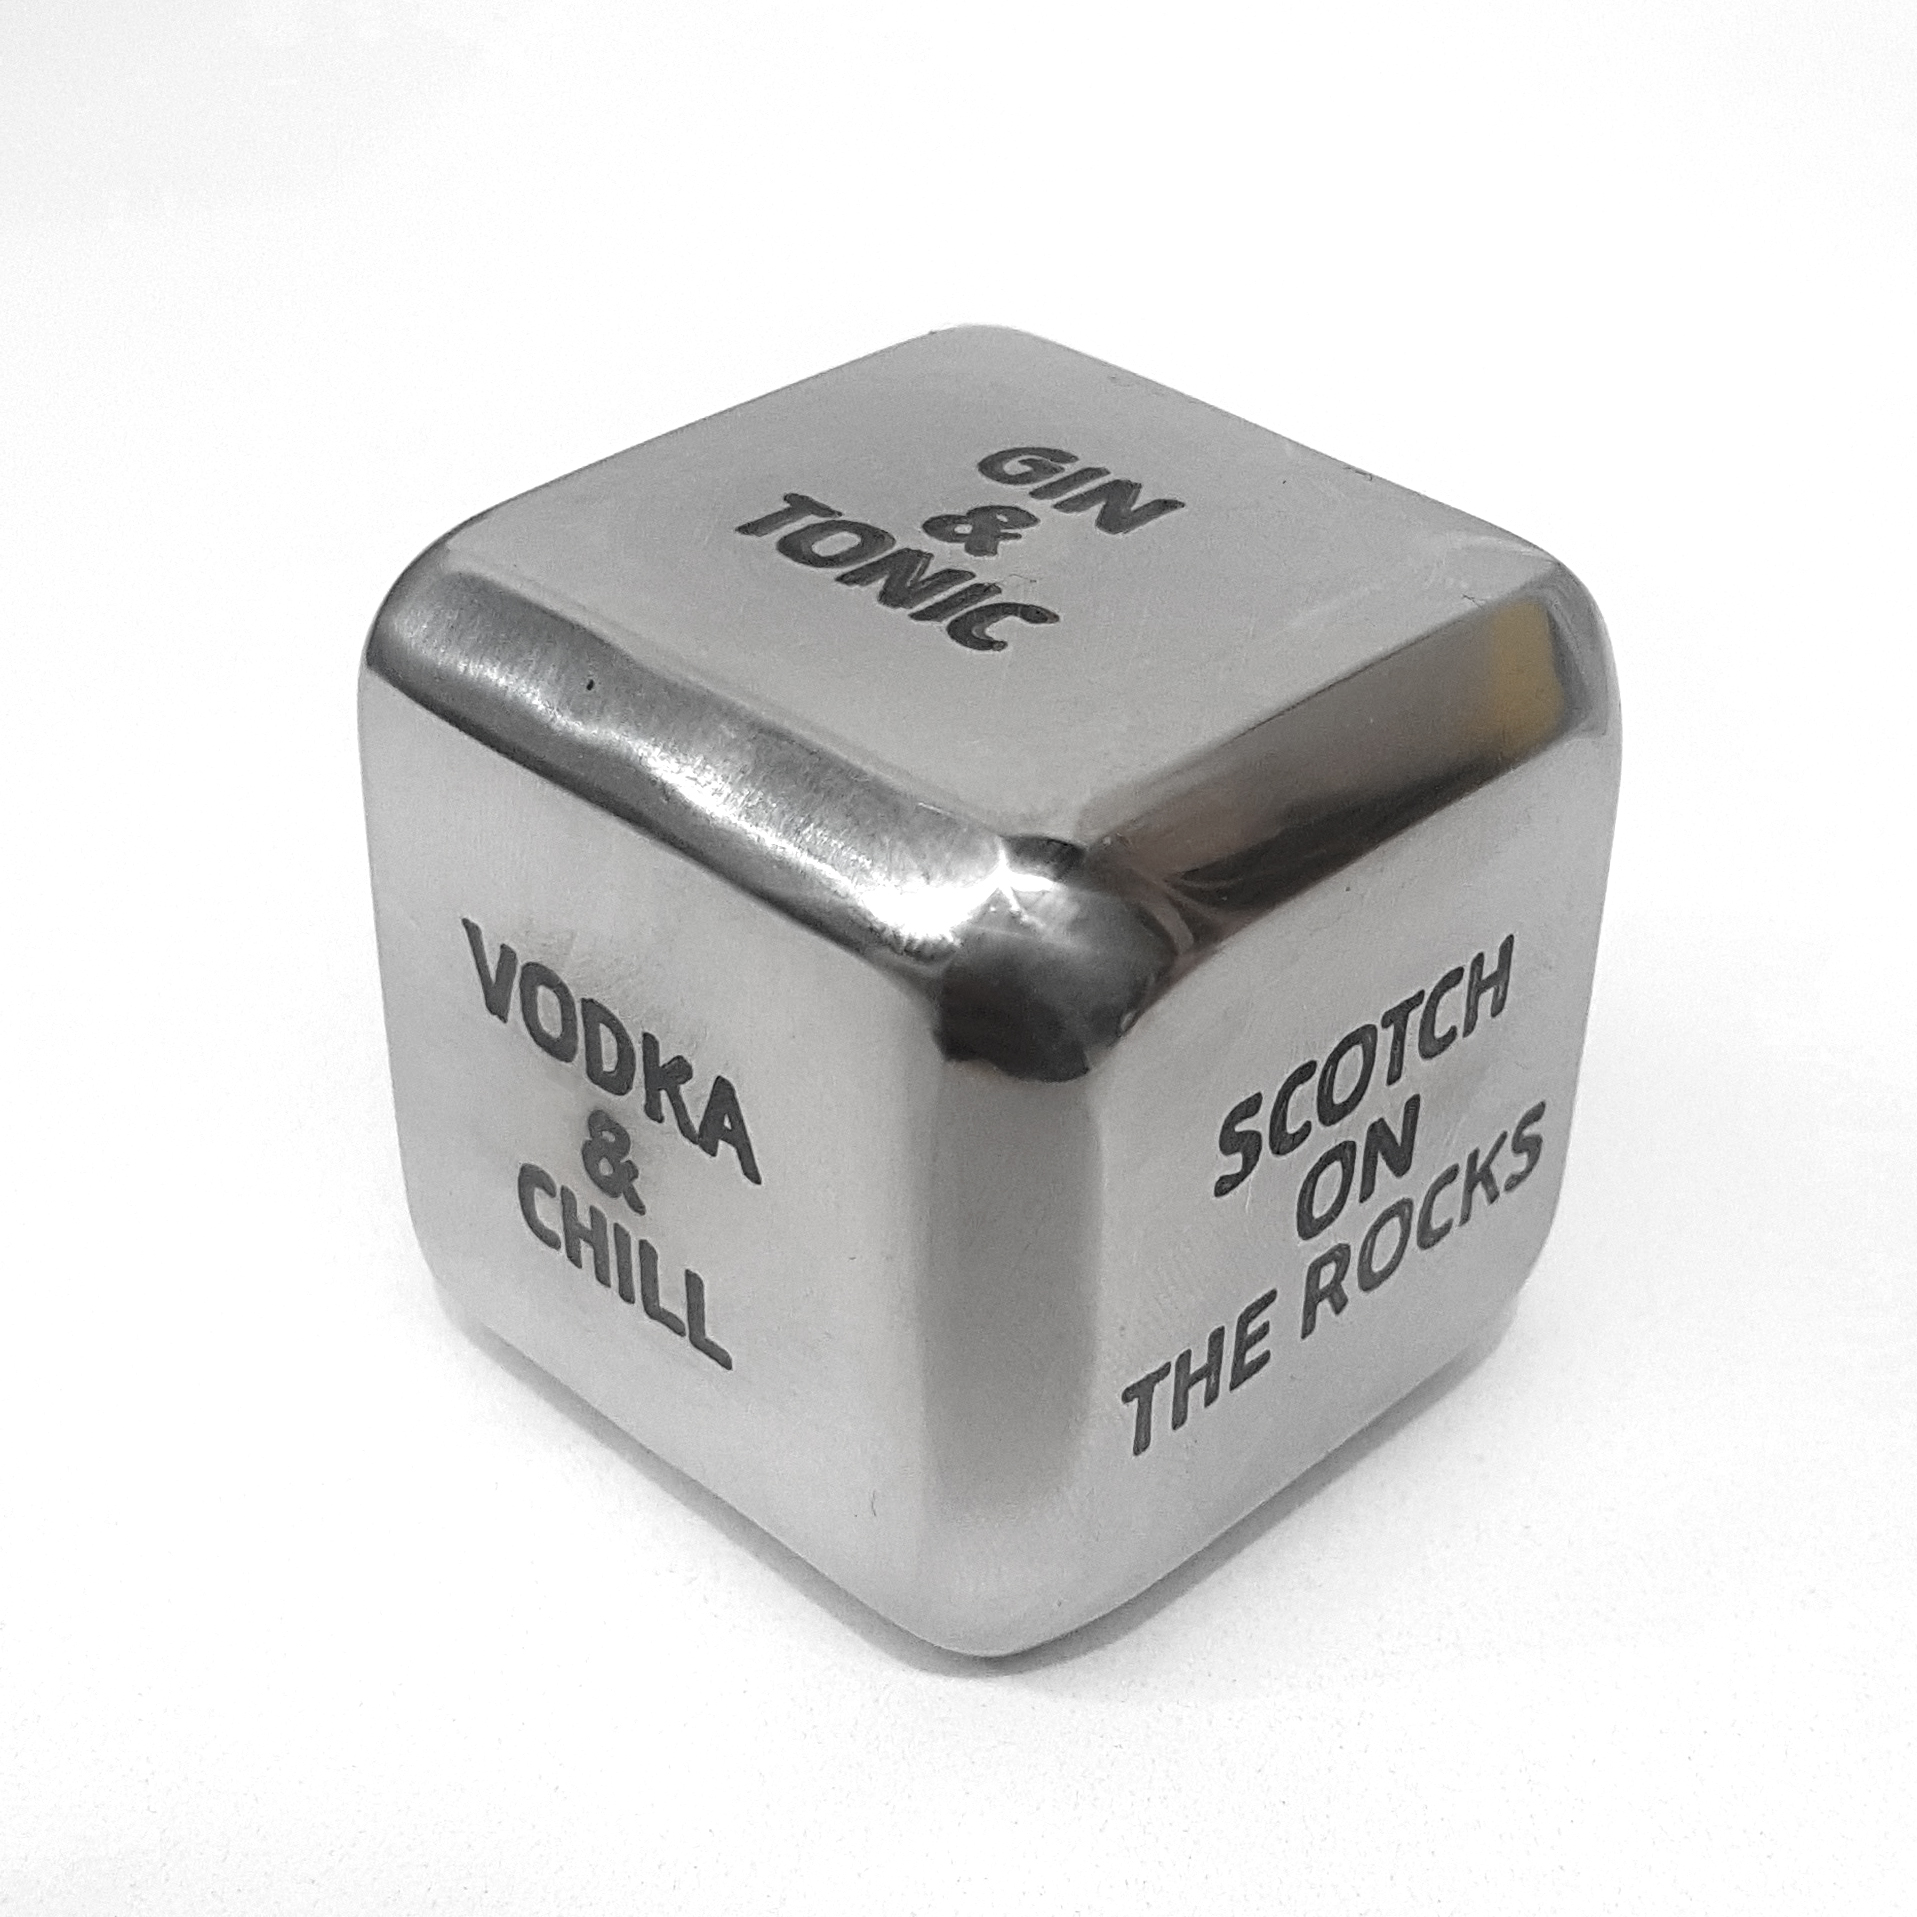 Stainless Steel Dice Annealed